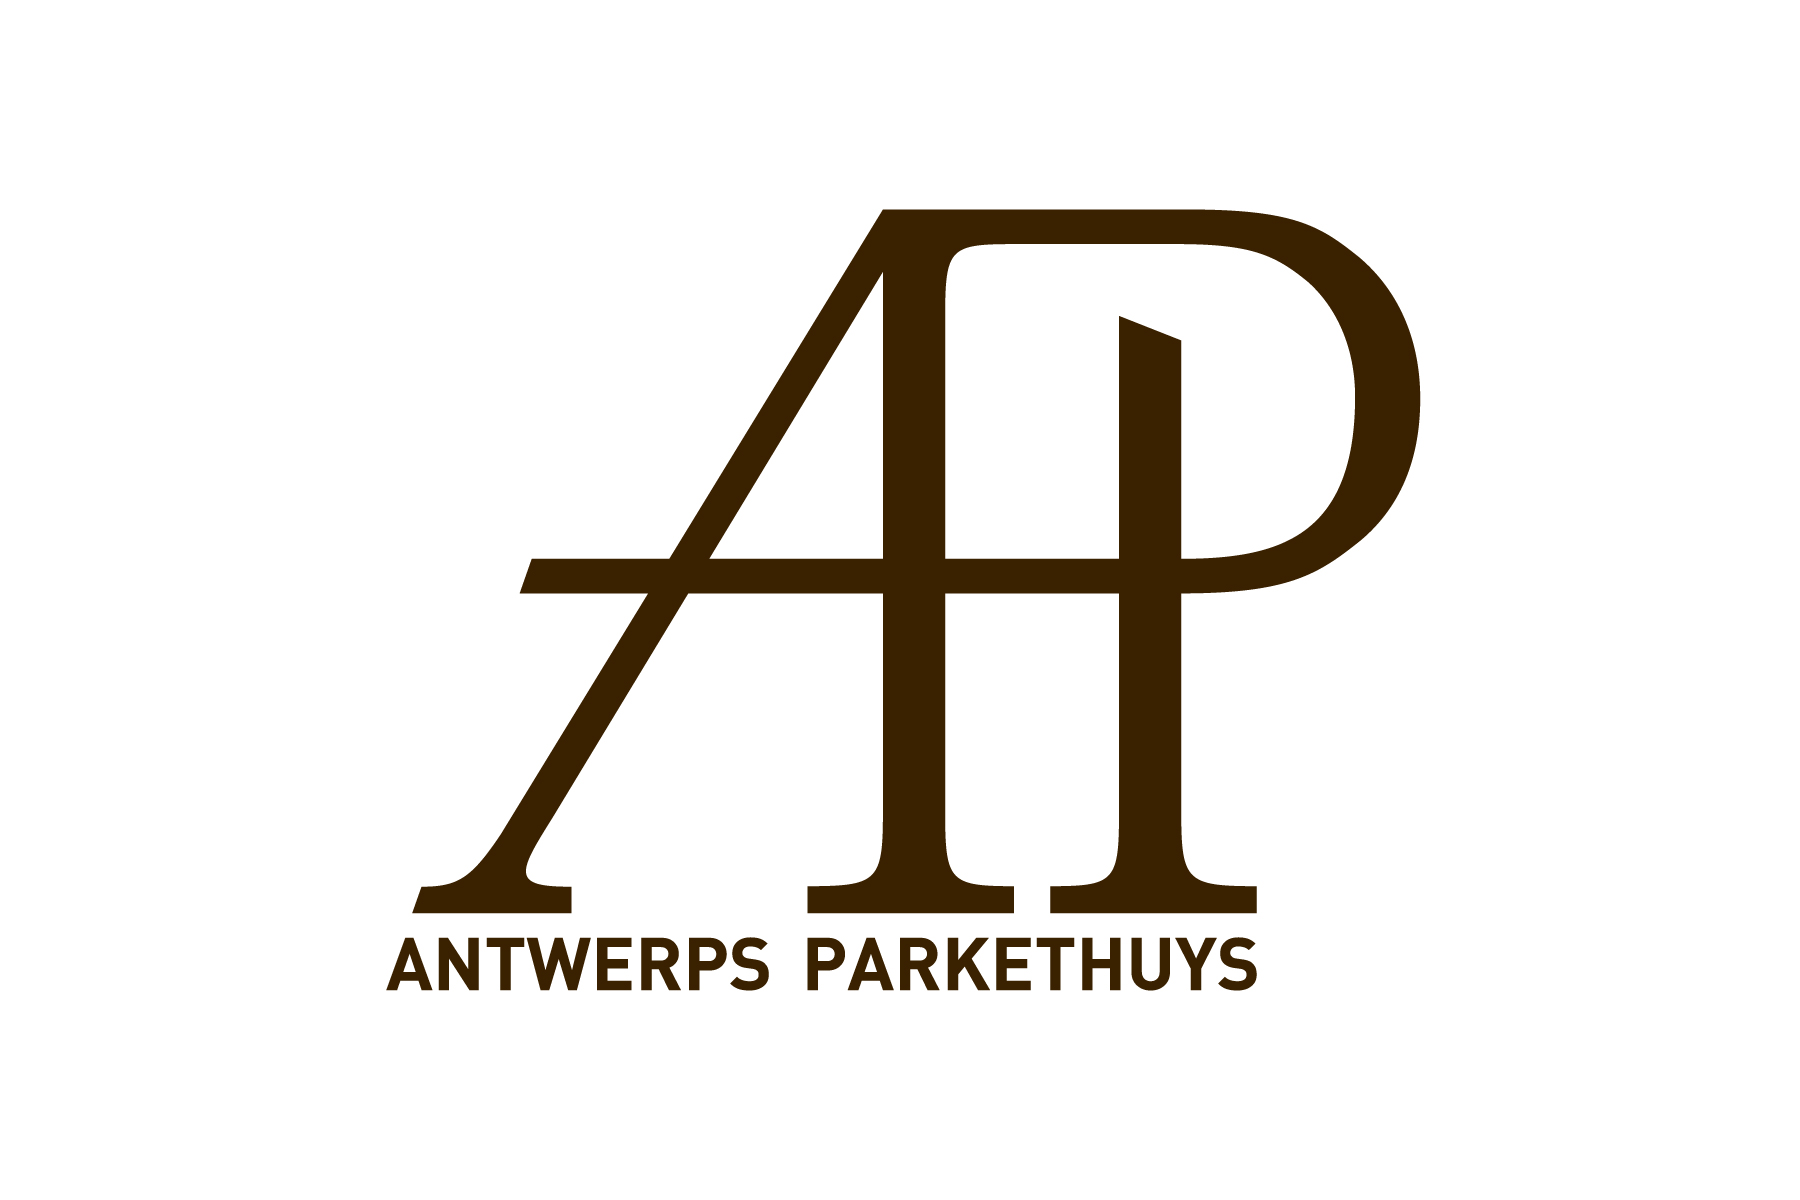 Antwerps Parkethuys Branding